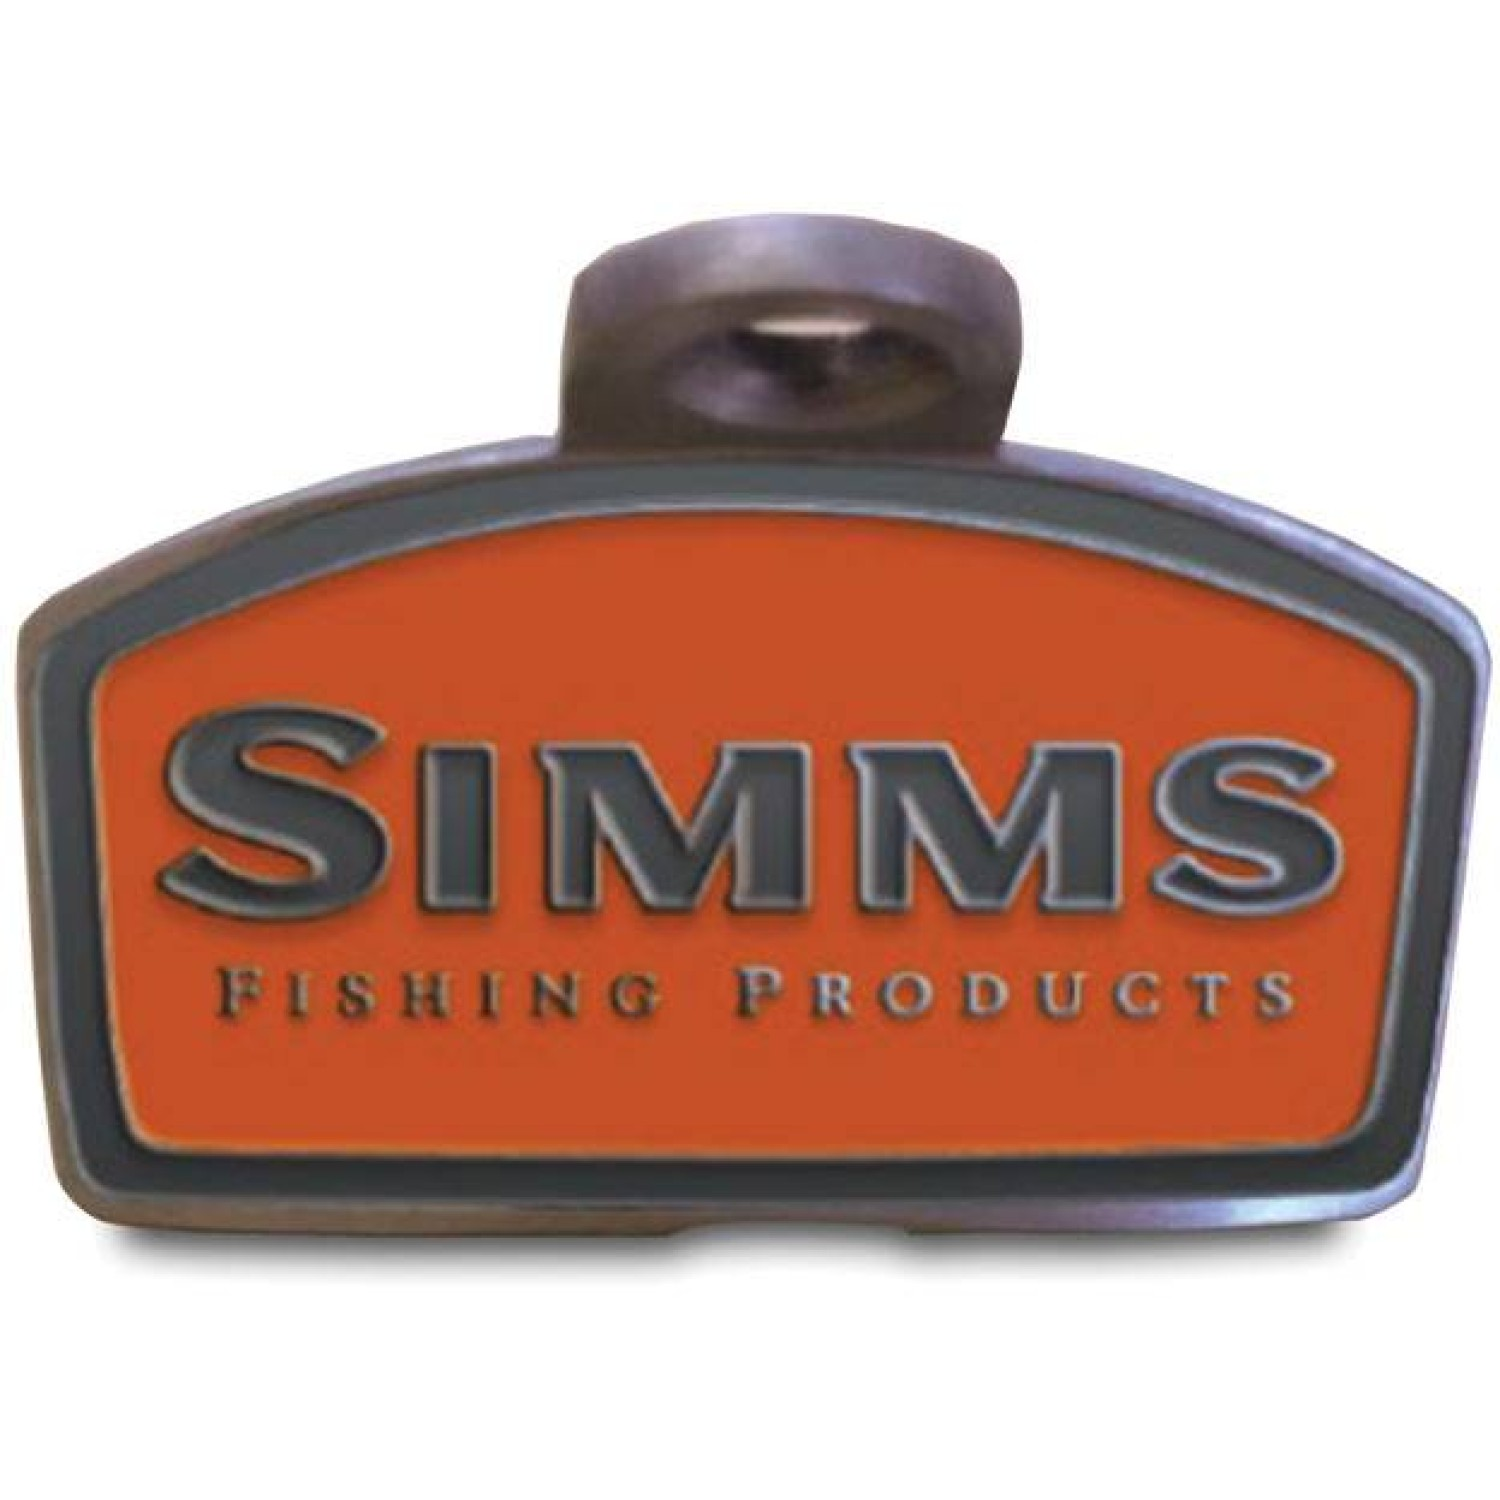 Simms Workbench Bottle Opener